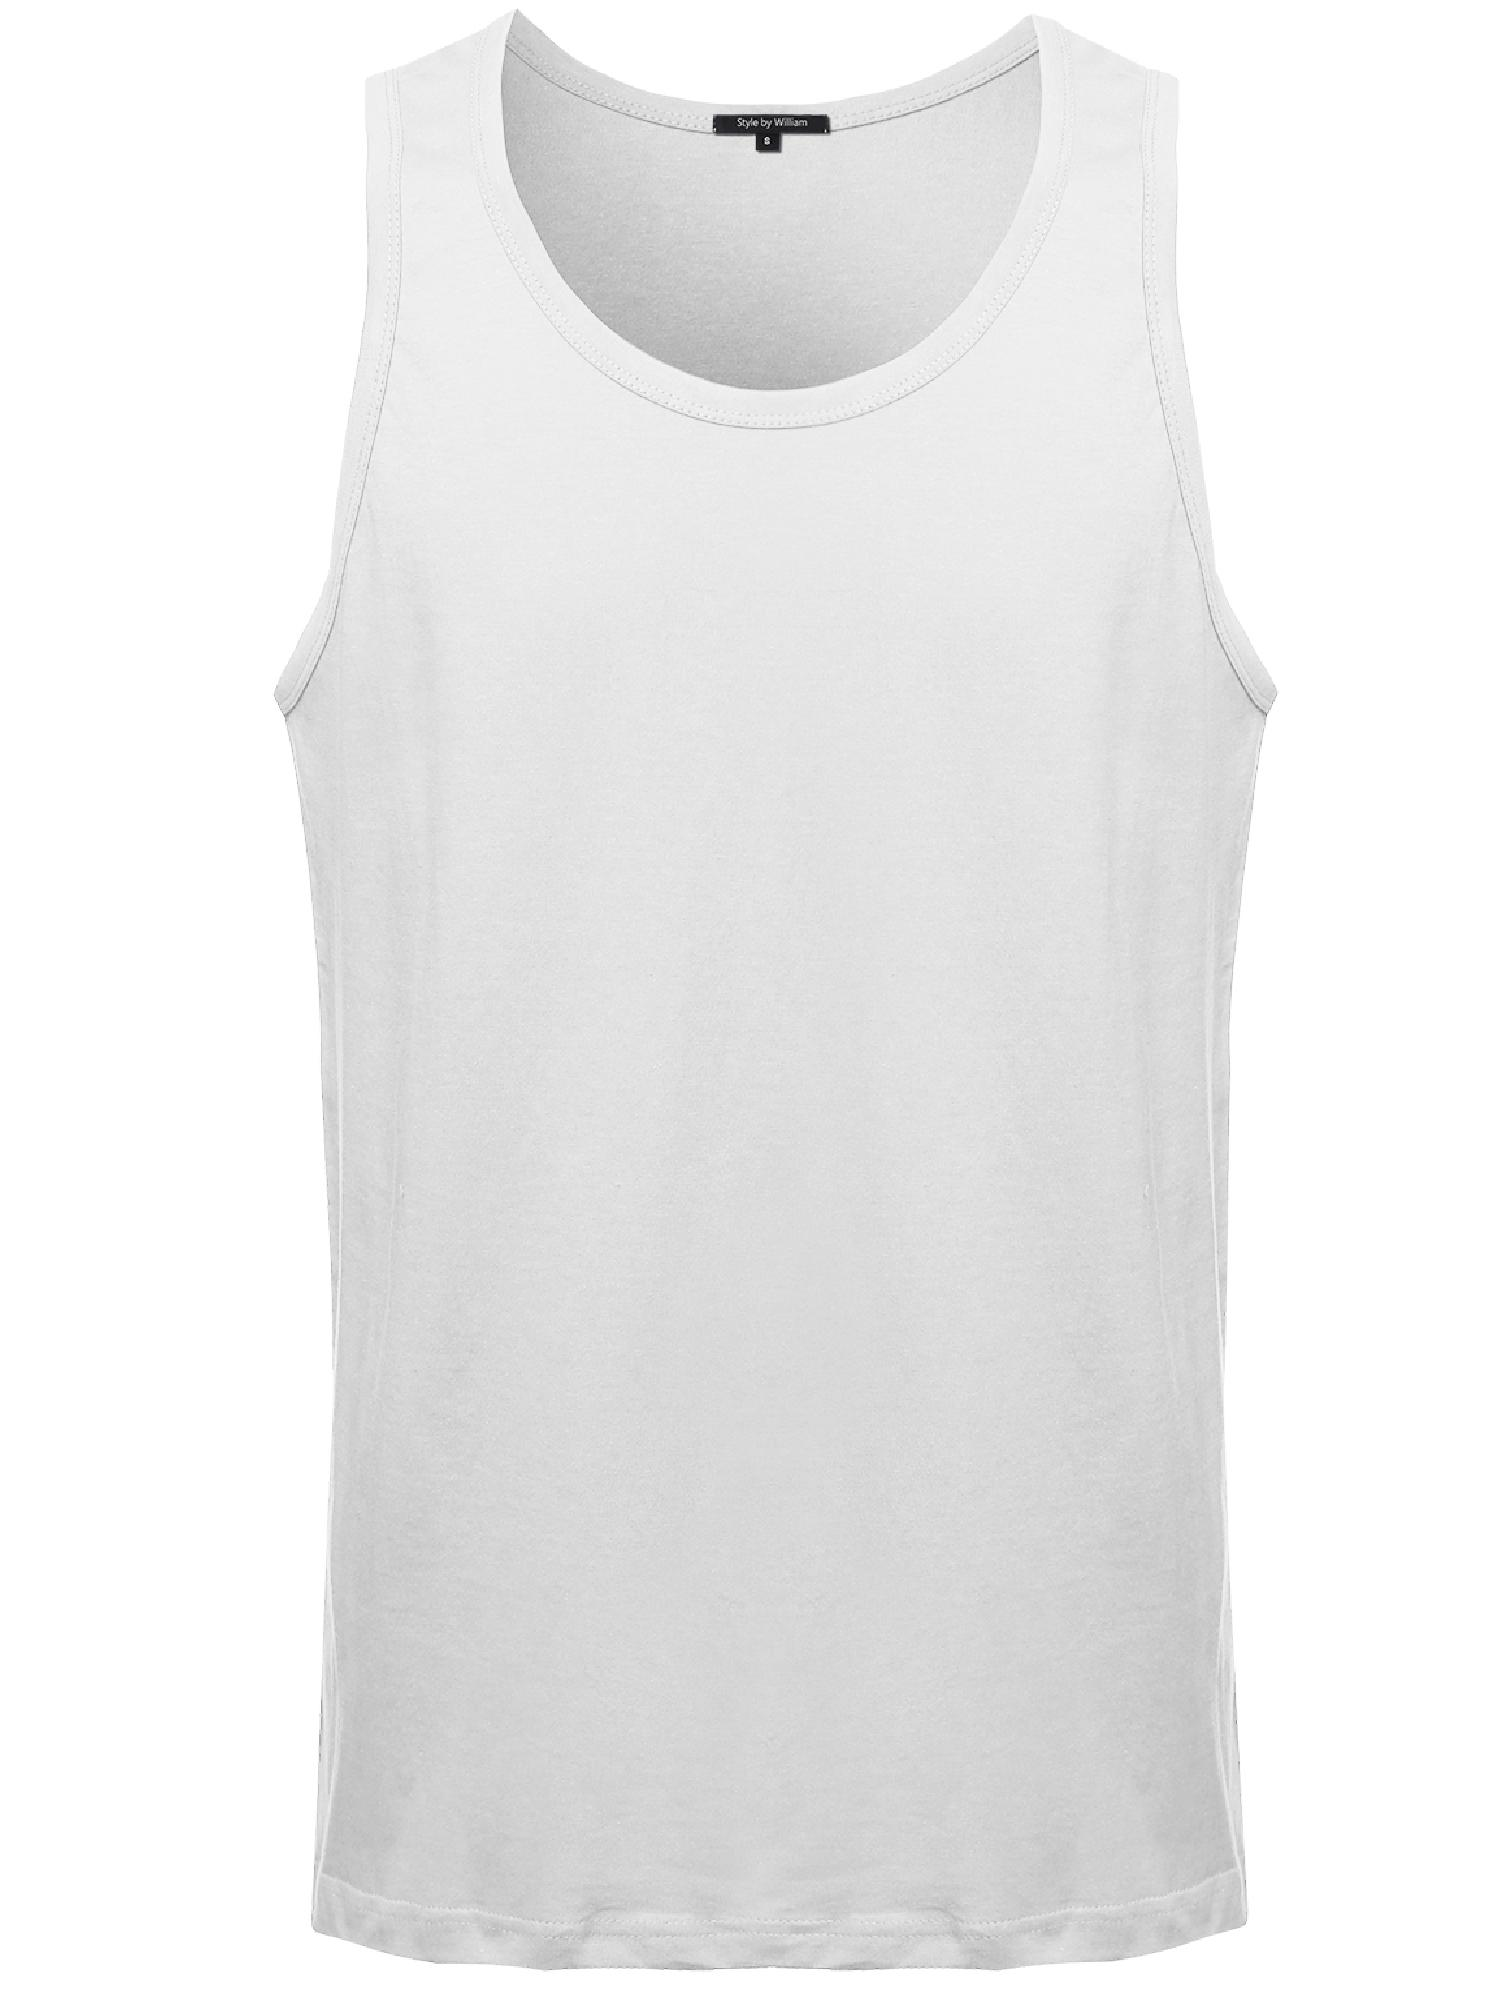 FashionOutfit Men's Premium Basic Solid Tank Tops in Various Colors